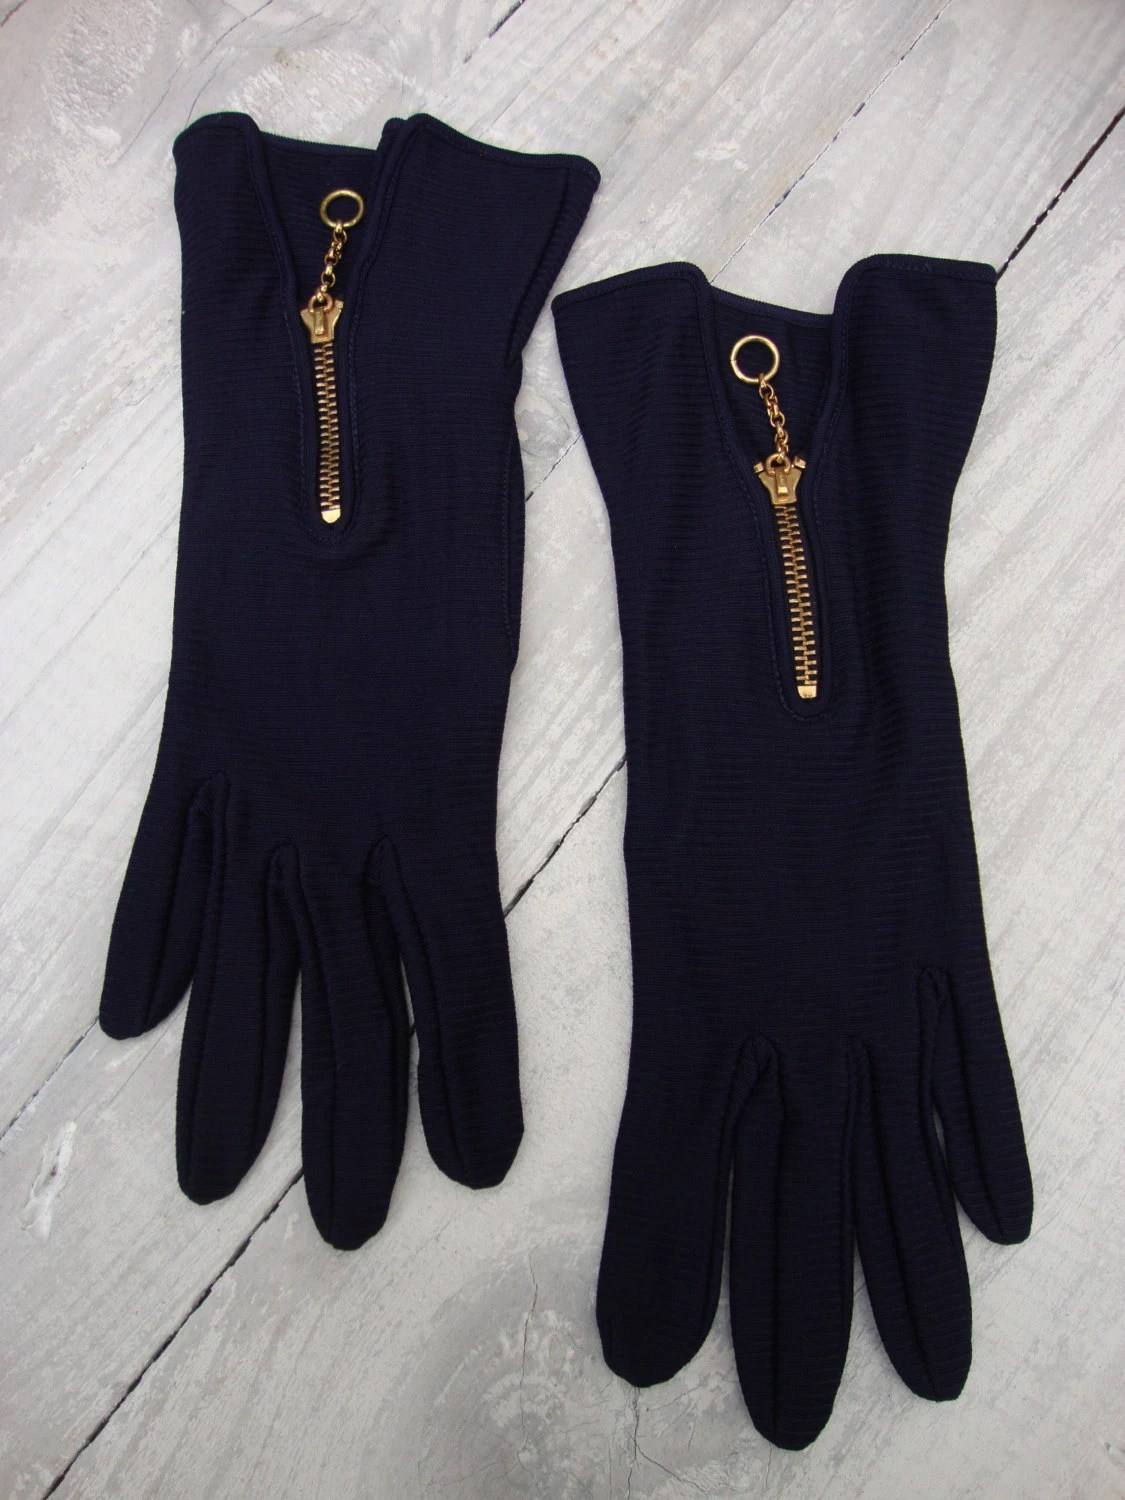 Leather driving gloves with zipper - Vintage Van Raalte Picnit Navy Blue Knit Zipper Accent Gloves Driving